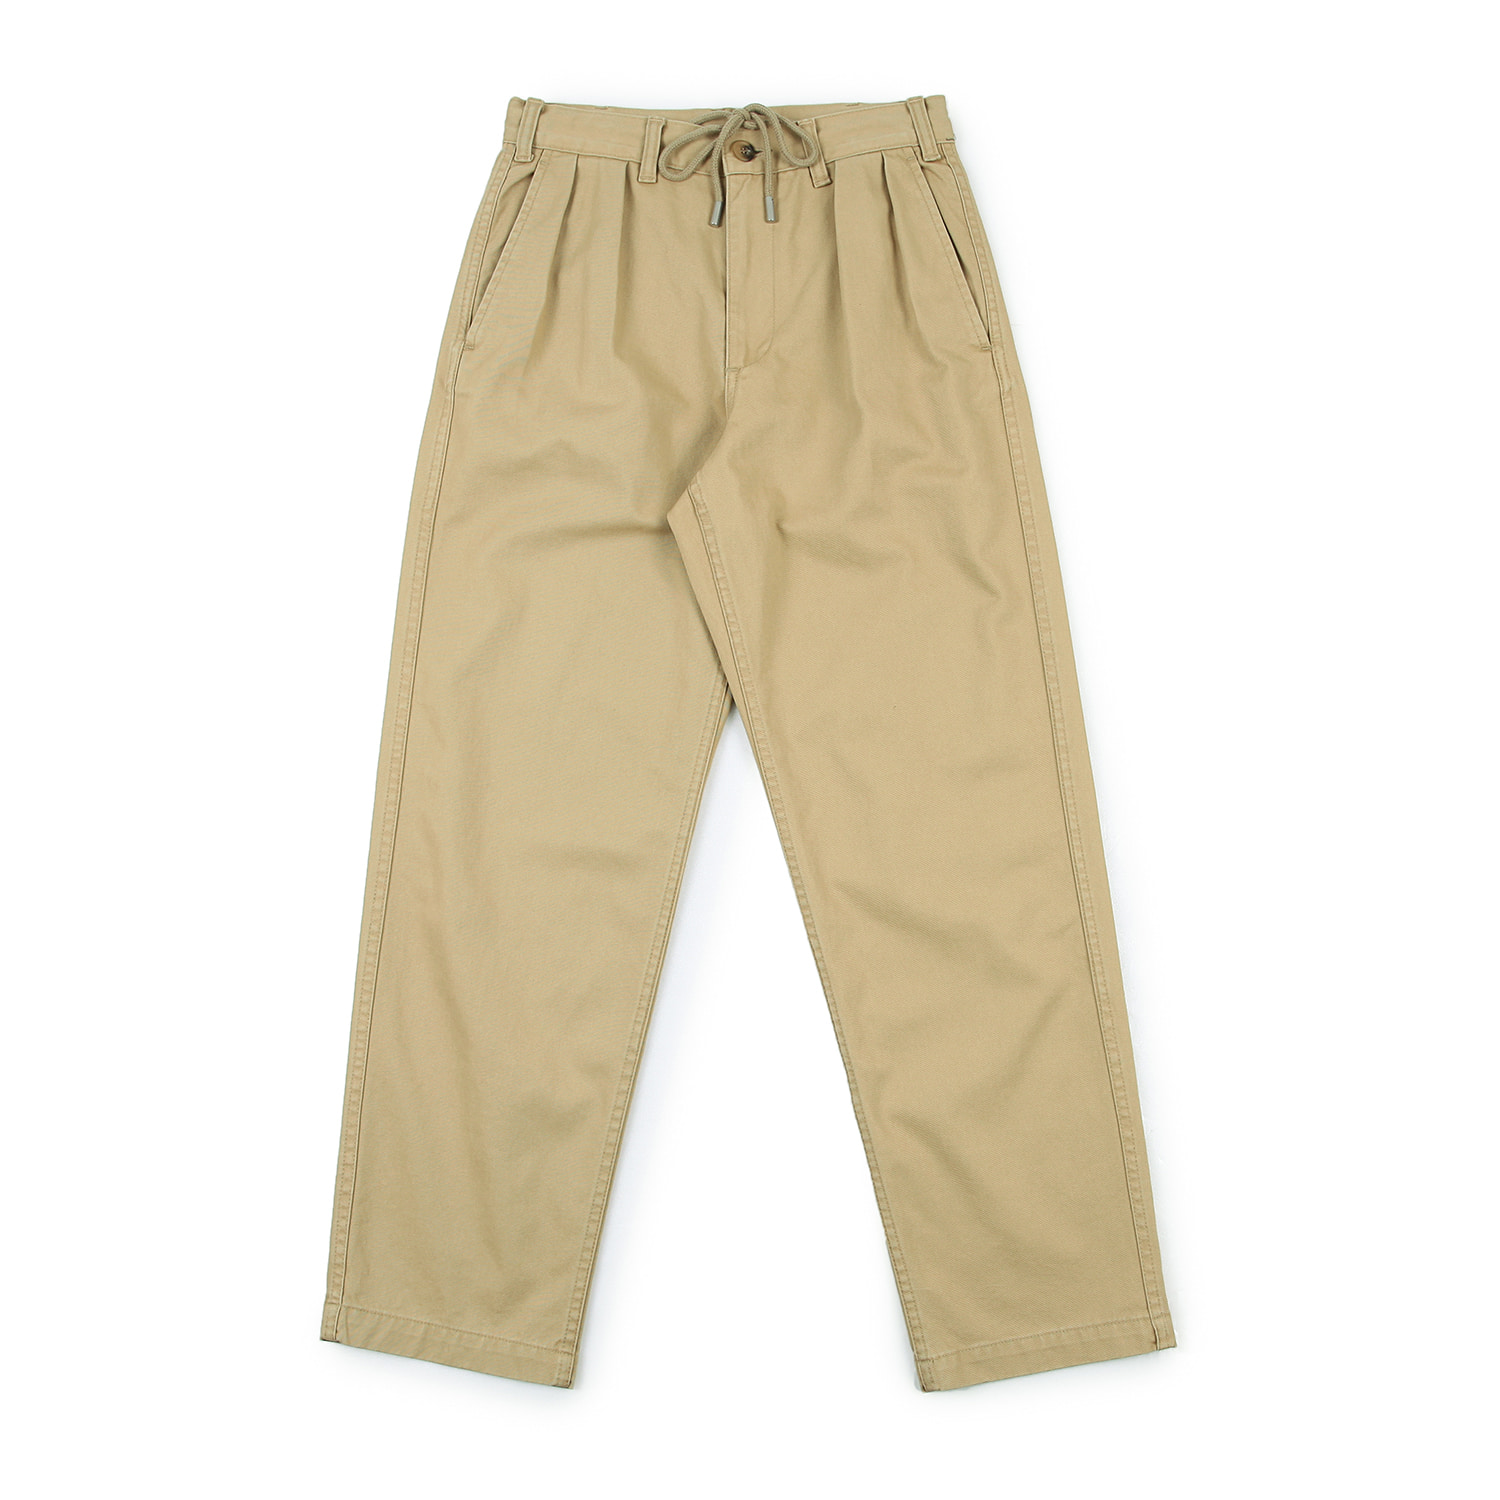 25%OFF_Lifetime Two-Tuck Pants (Sand)